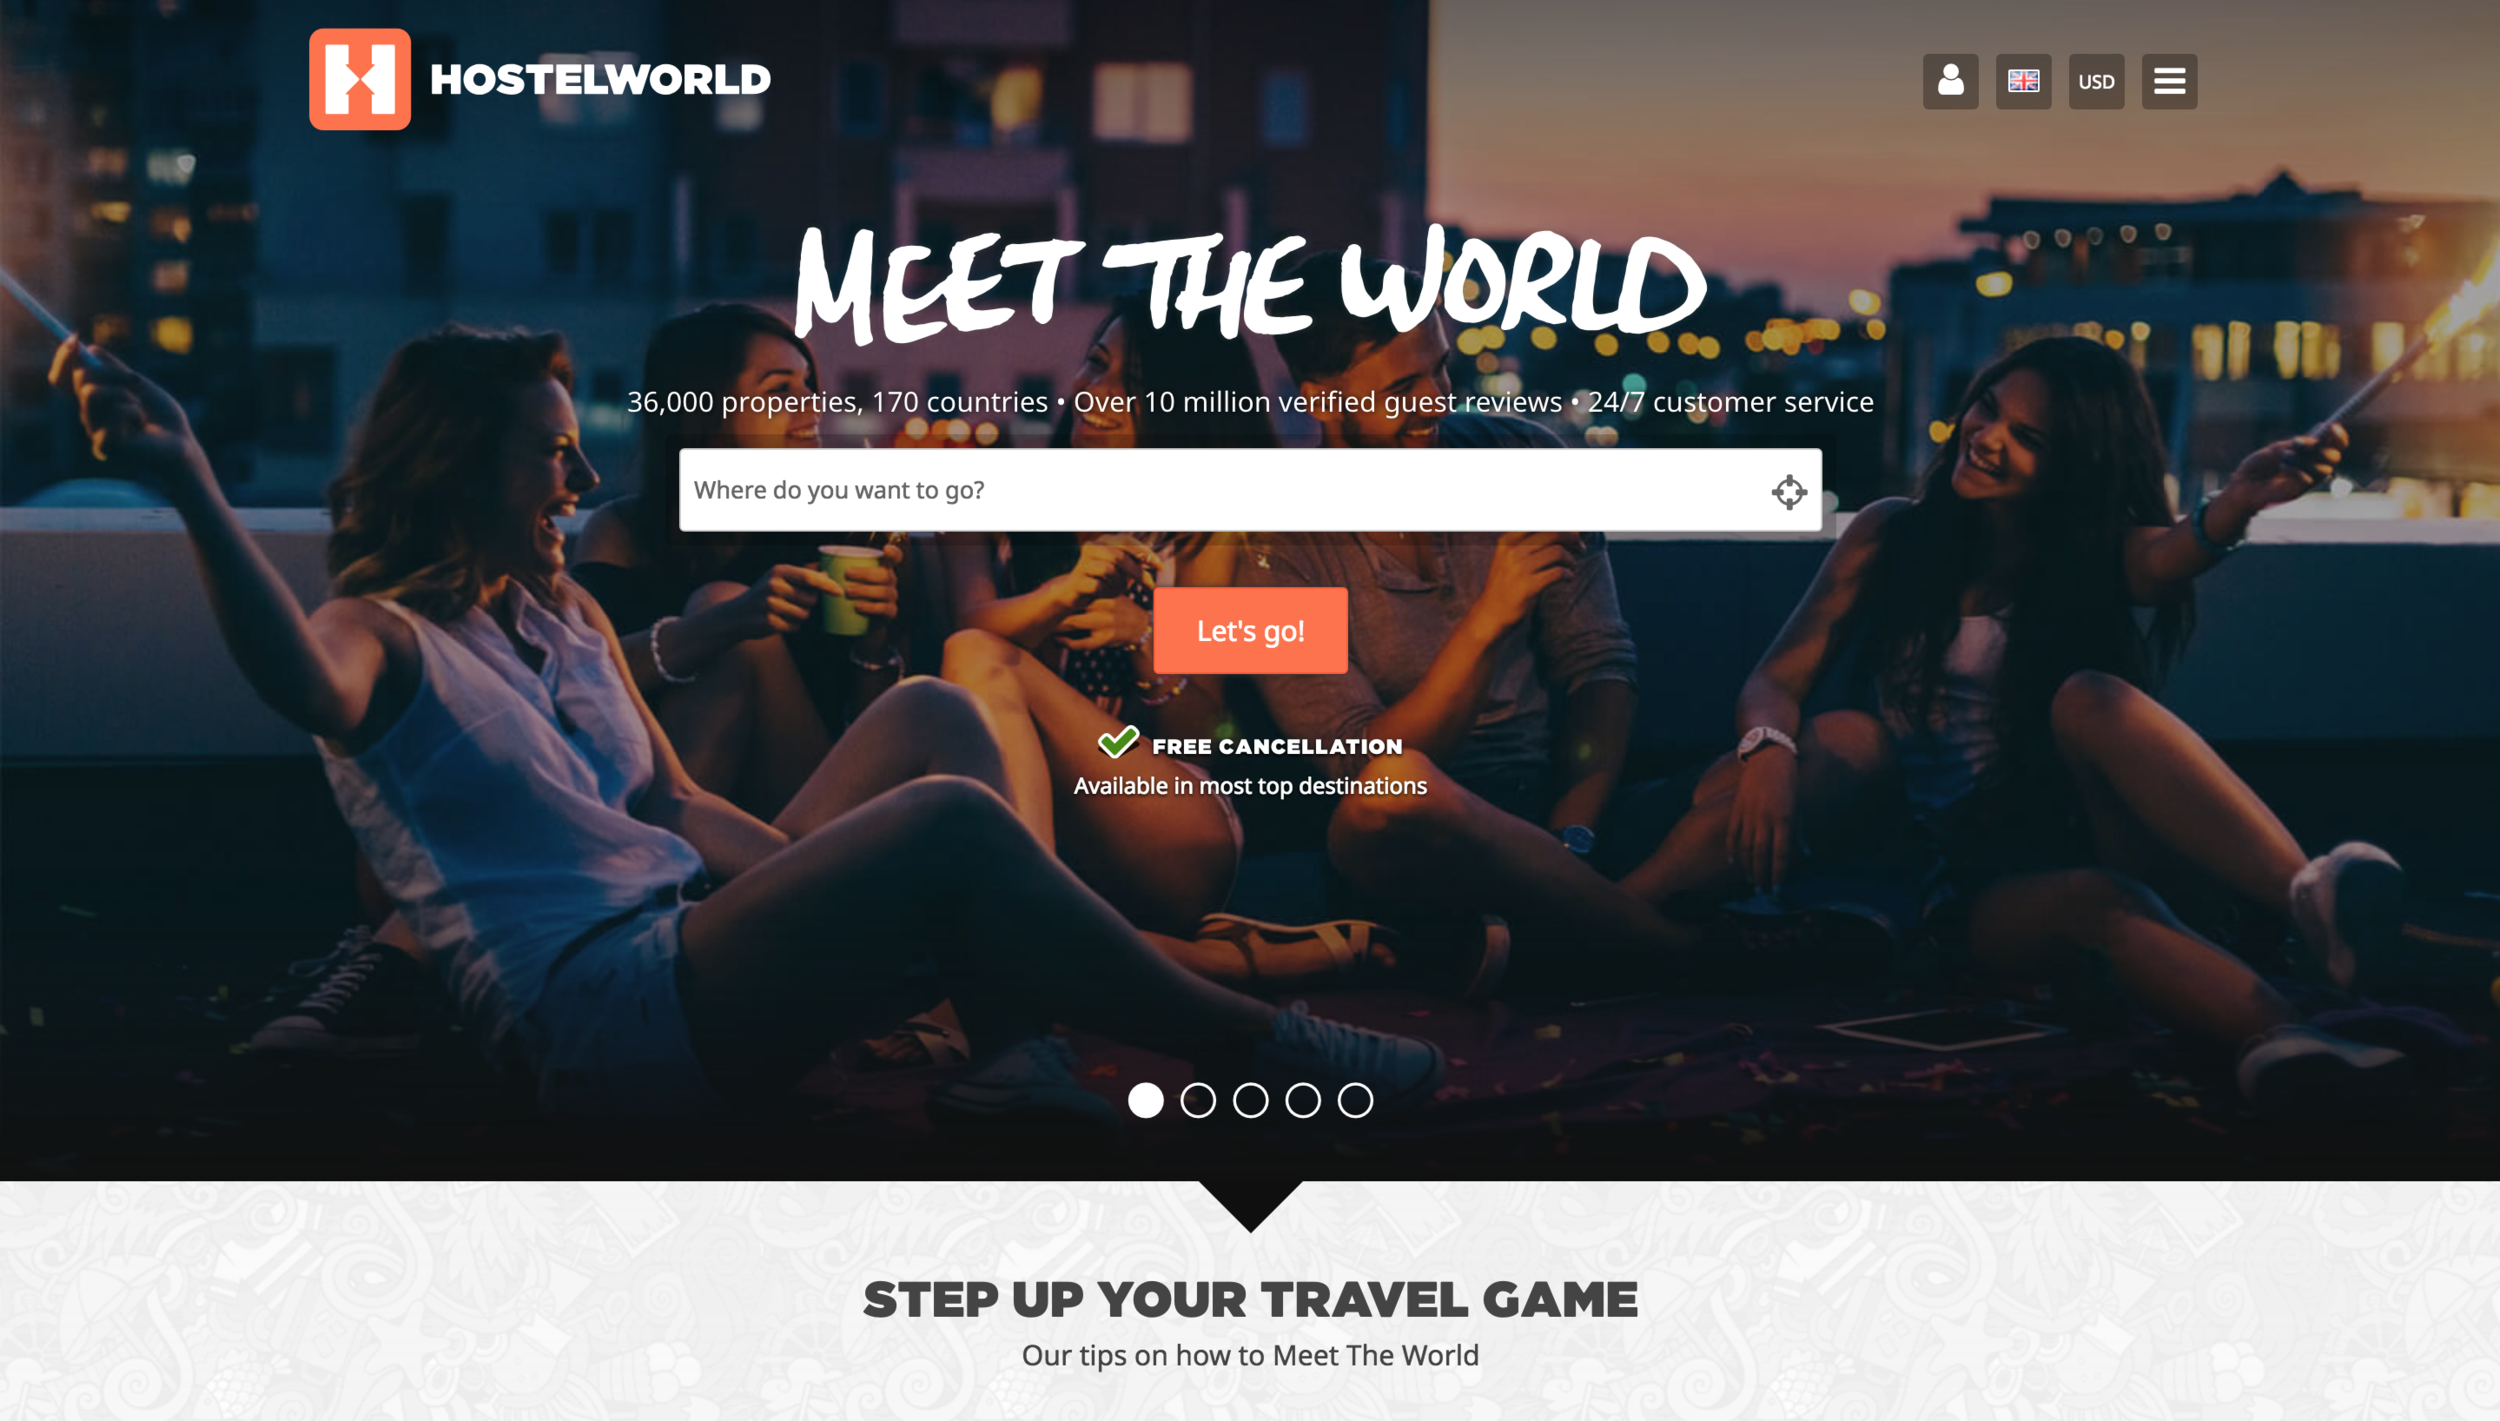 HostelWorld's Home Page.